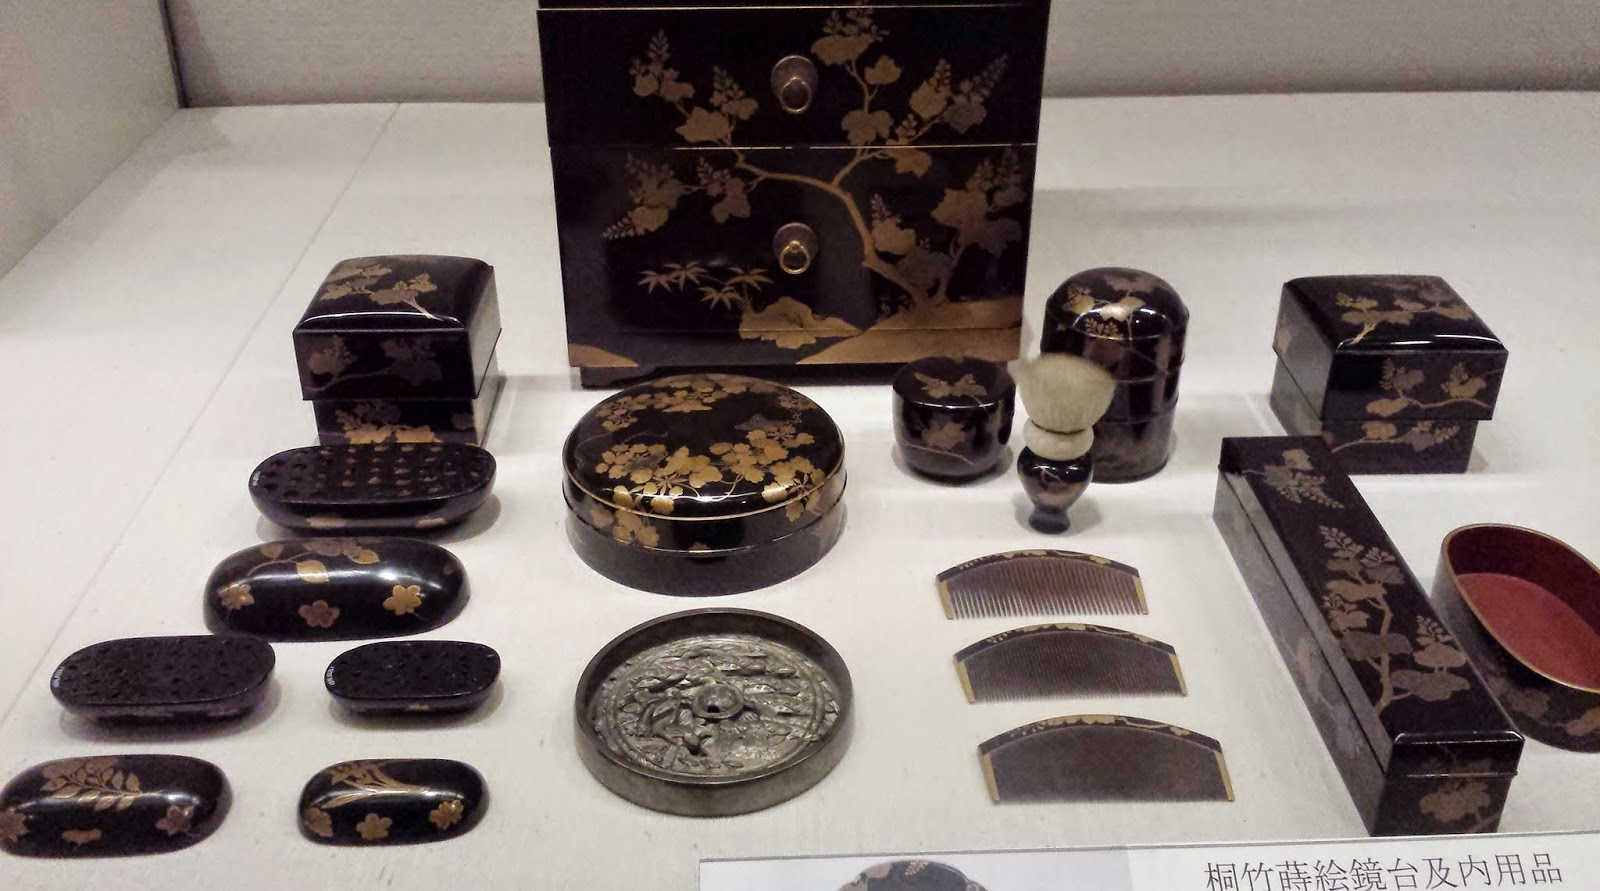 Ancient Japanese makeup kit - the kabuki brush looks quite similar to today's!